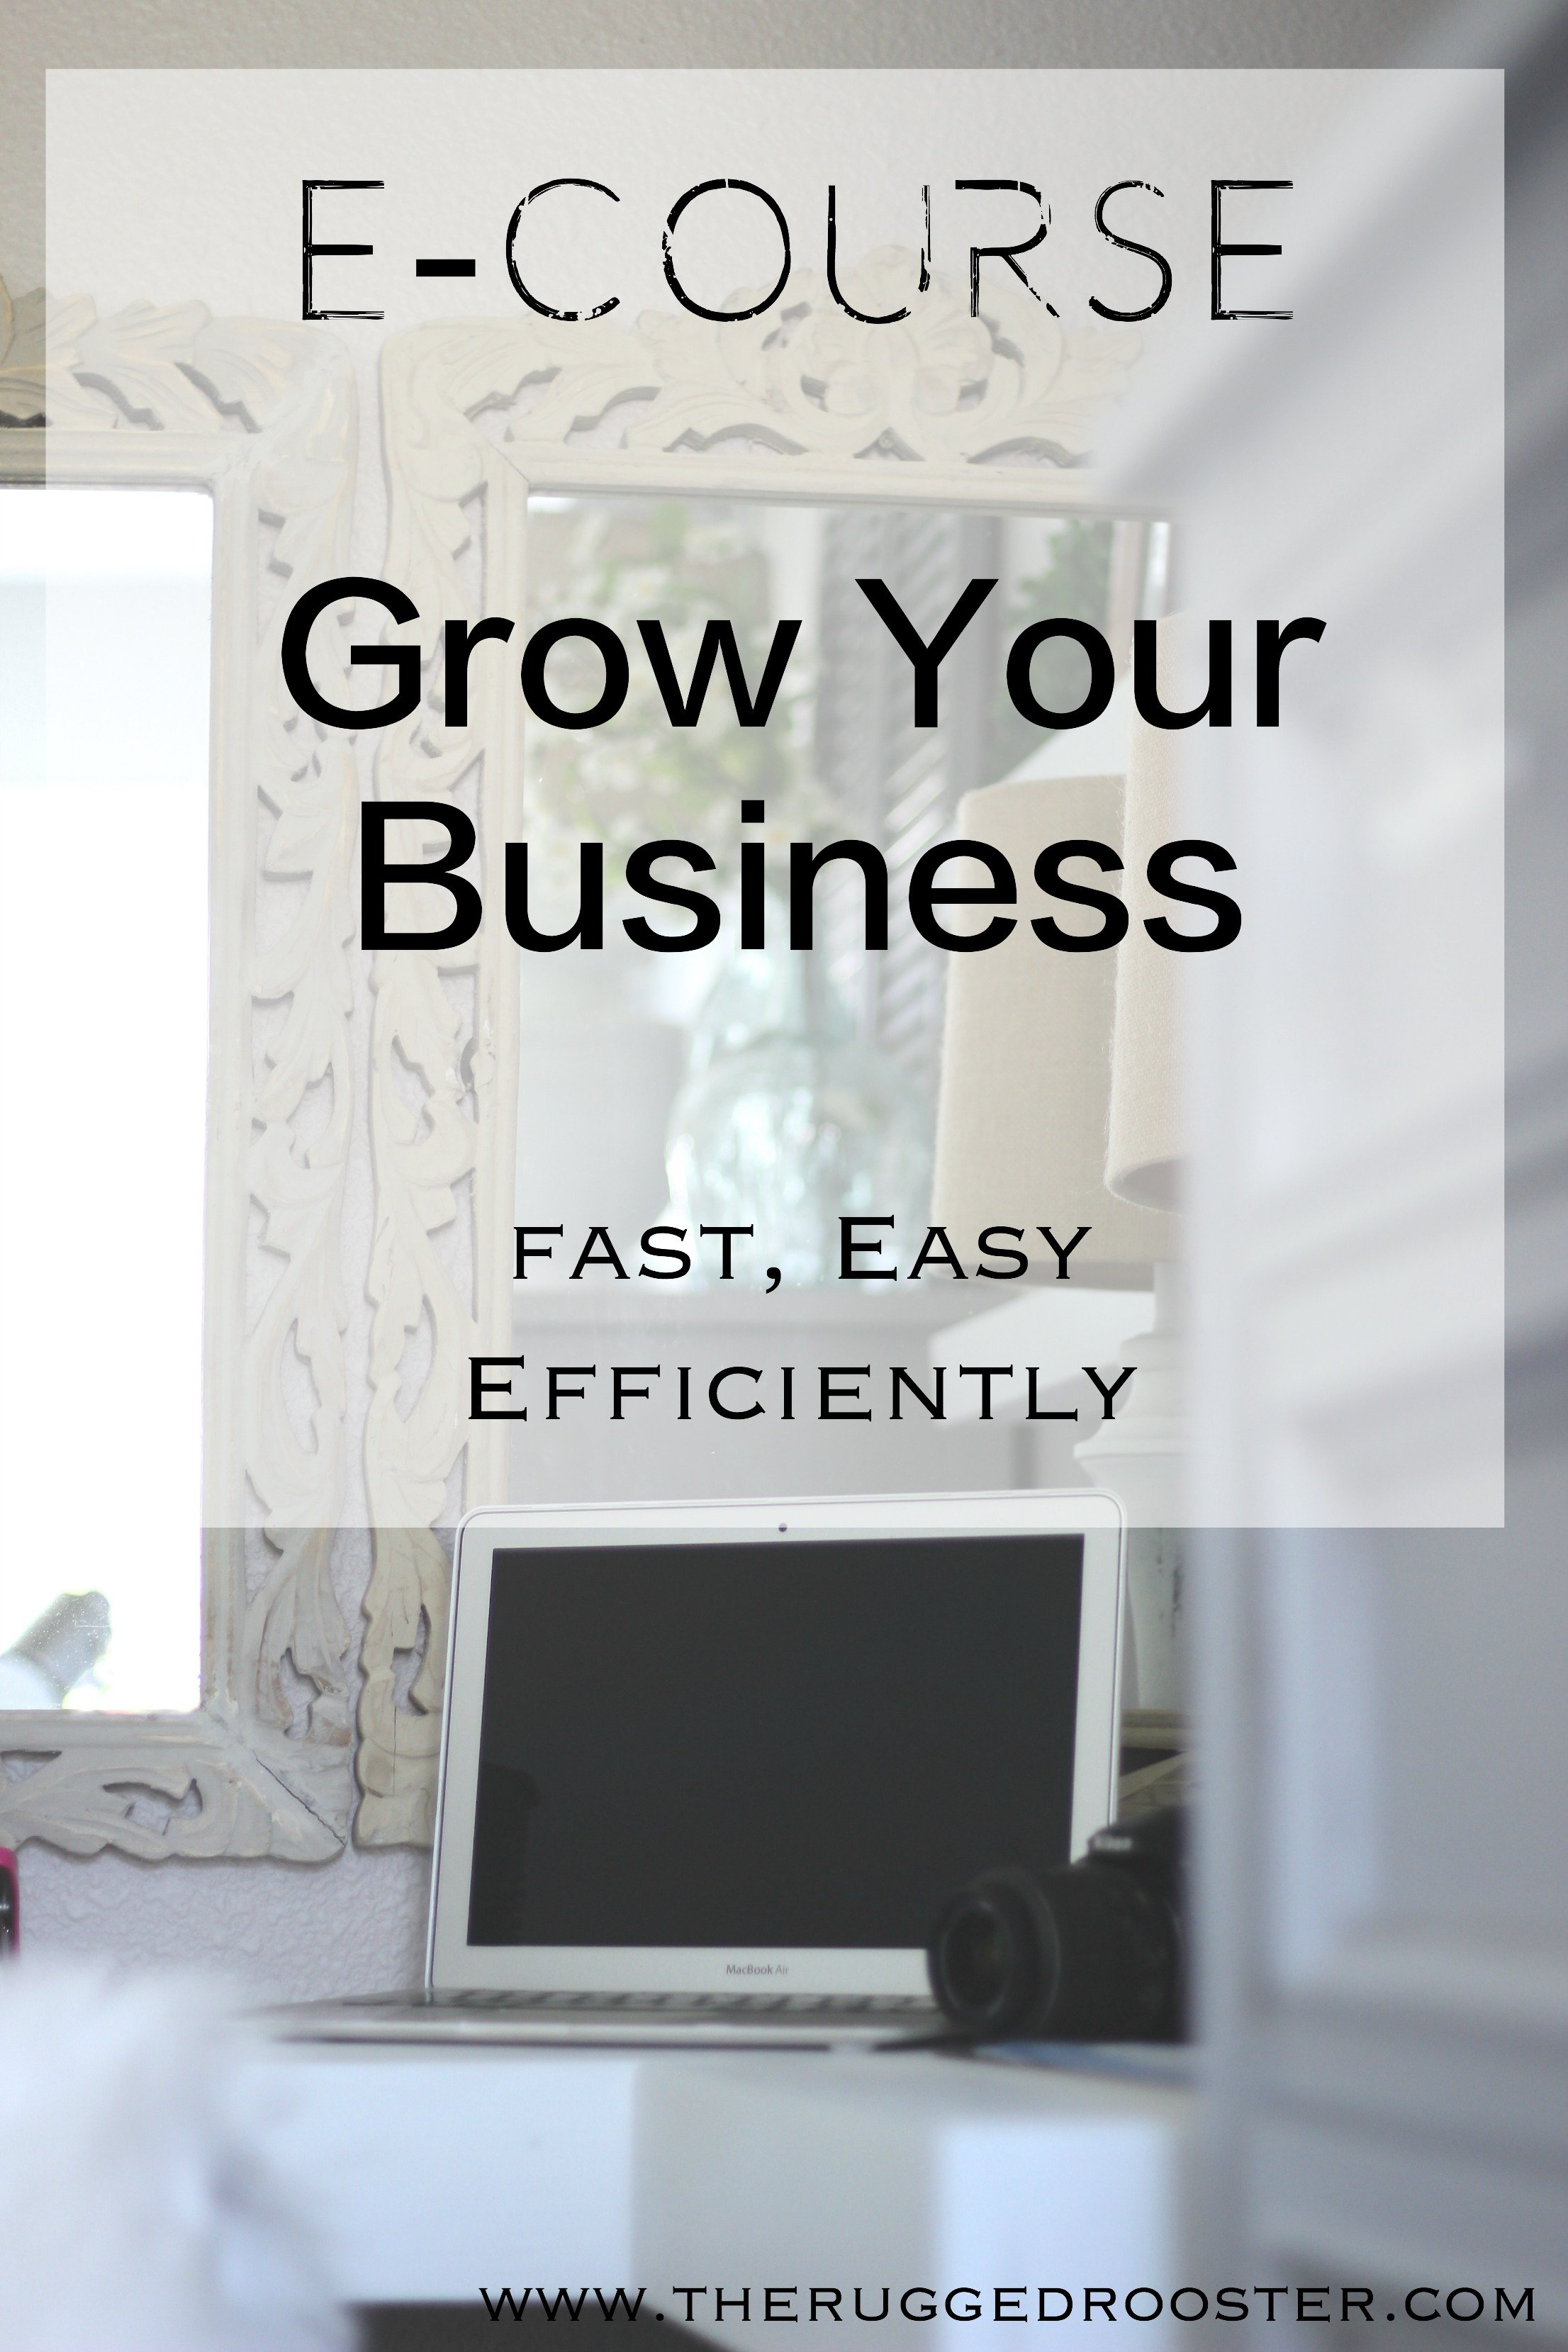 Grow Your Business, Market Your Business